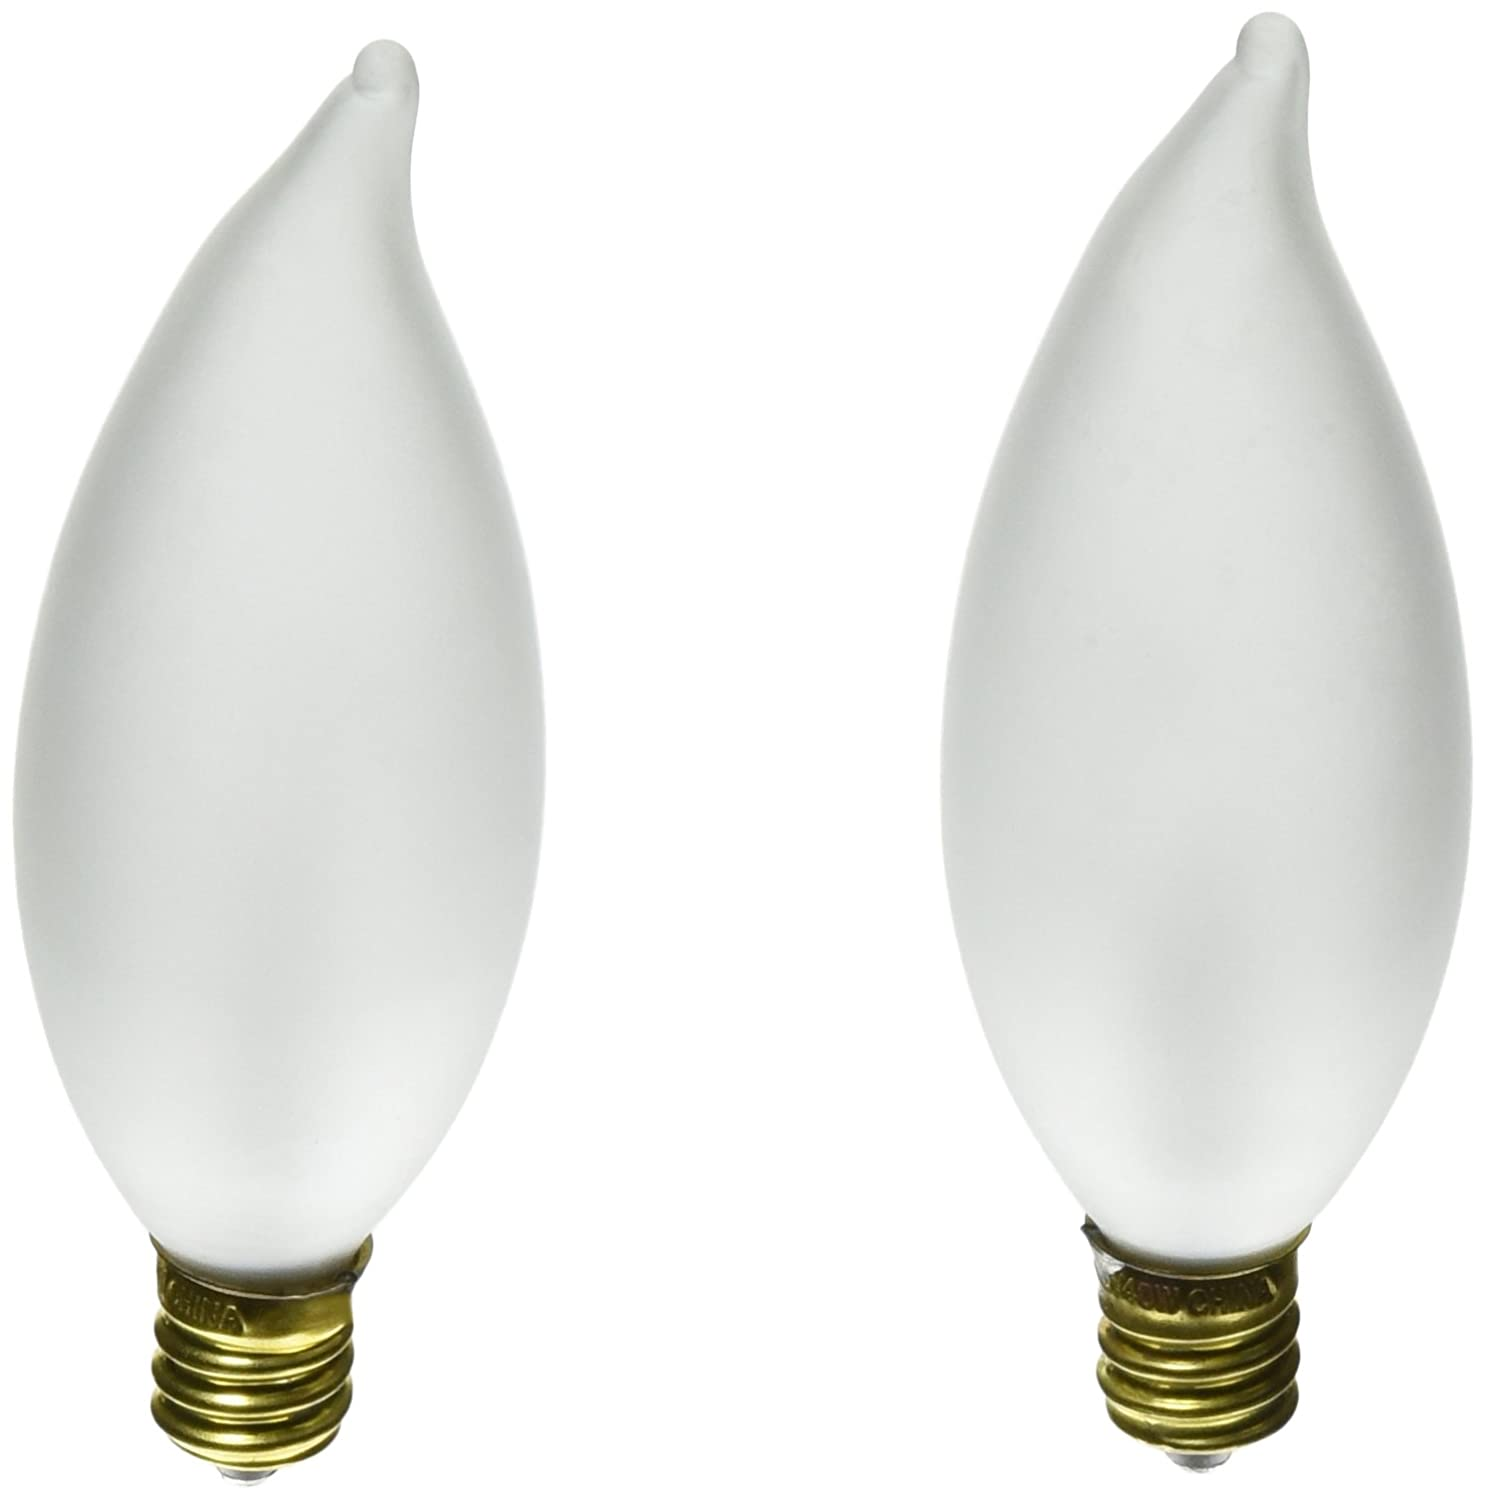 Frosted Light Bulbs >> Satco Products S3779 40ca9 5 Candelabra Base Frosted Light Bulb